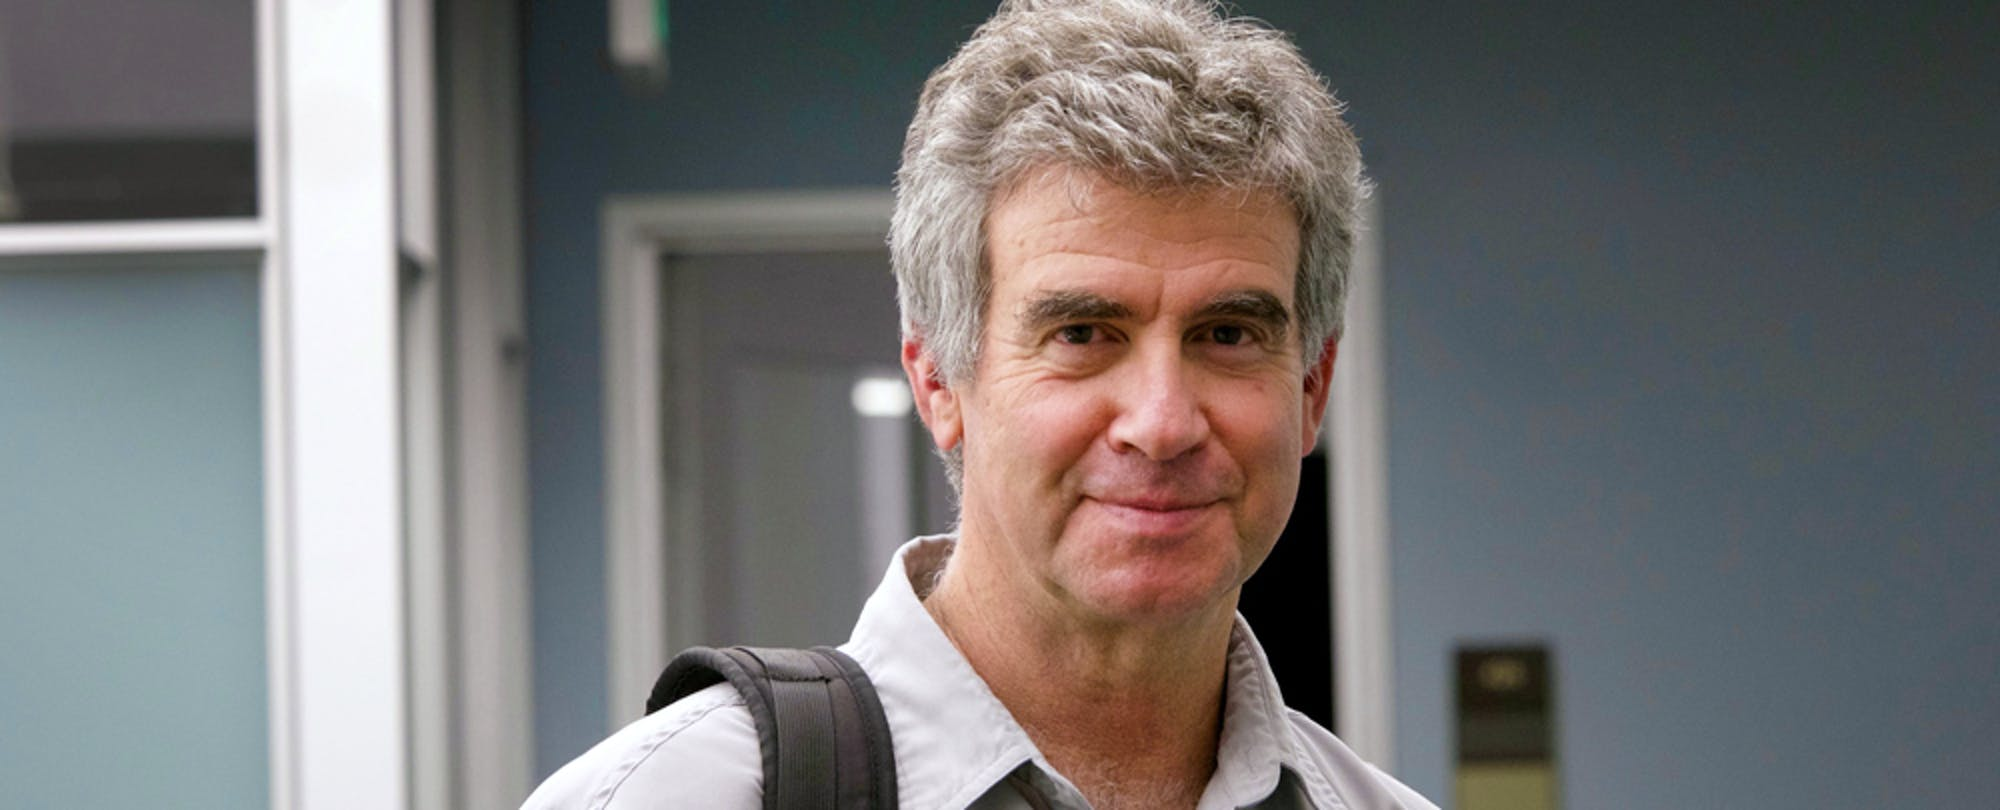 Bridging Edtech Industry and Academia: An Interview with Stanford's New Dean of Education, Dan Schwartz